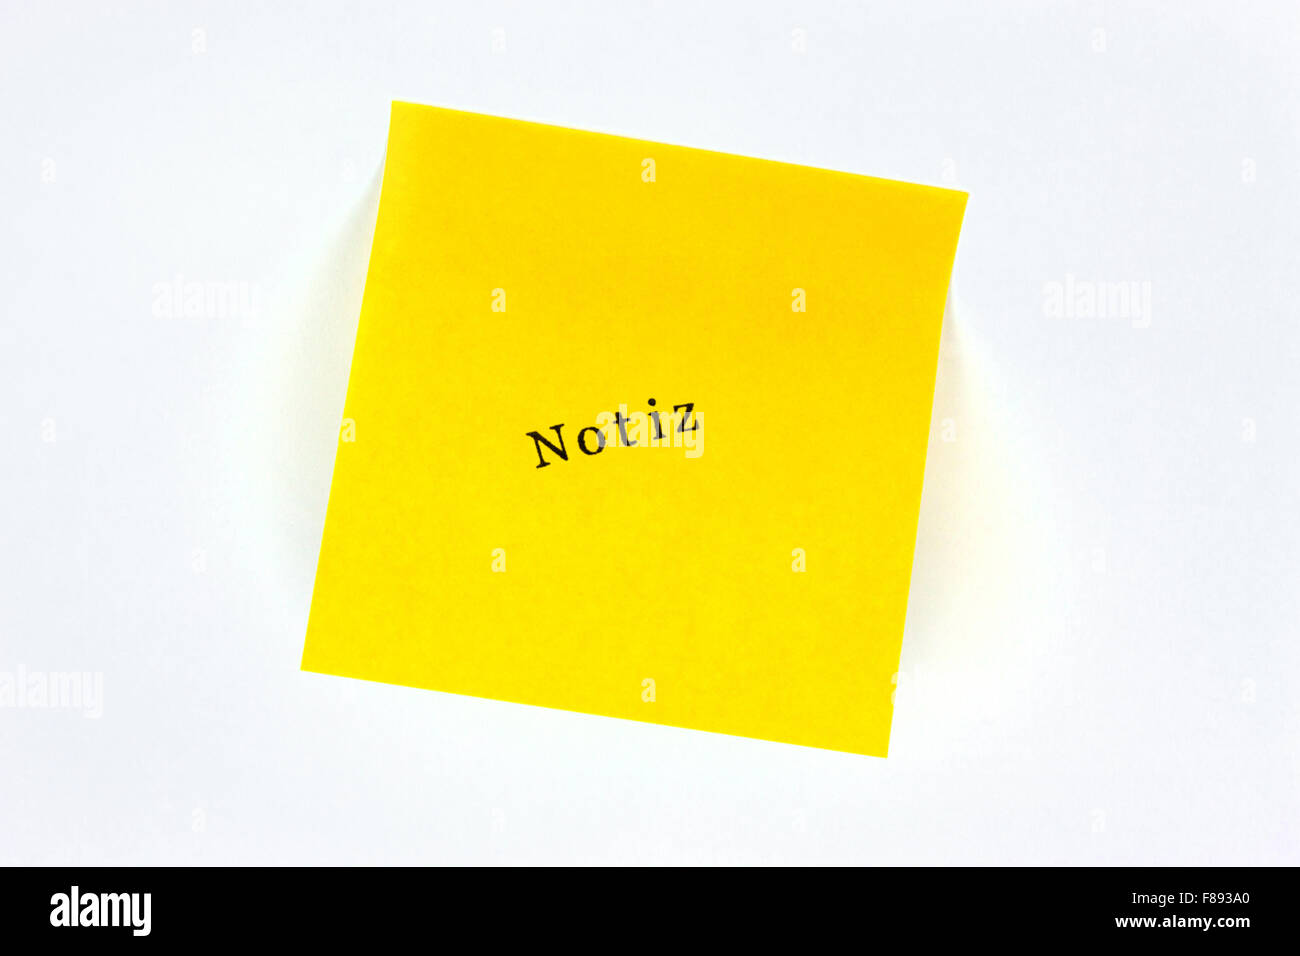 Notiz Post it - Stock Image